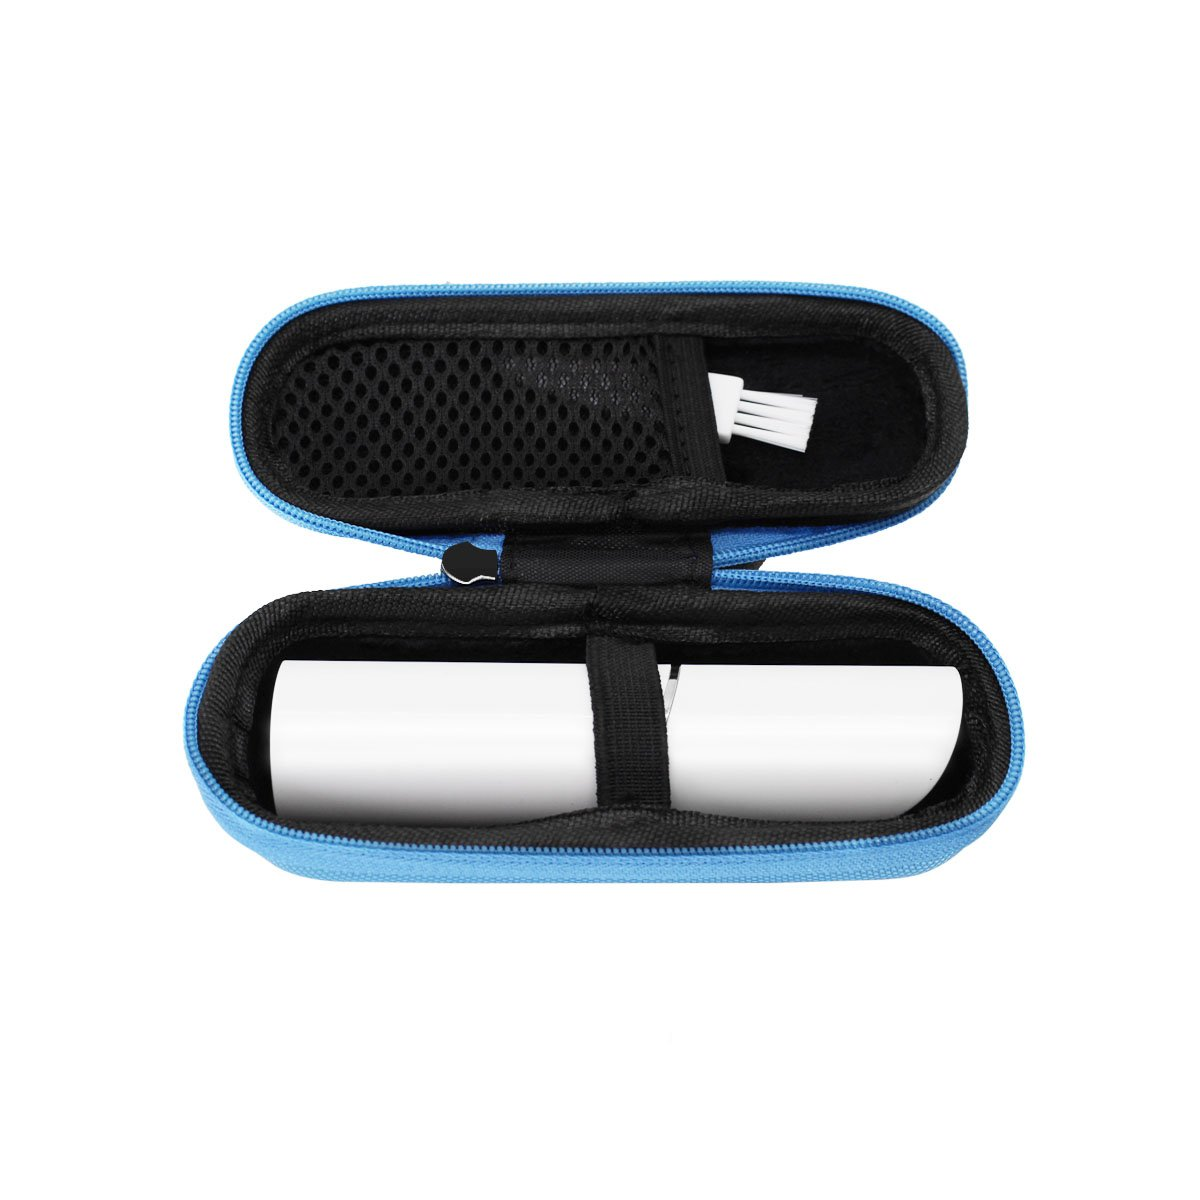 Hard Case Bag for finishing Touch Women's Hair Remover Painless Removal of Hair by VIVENS